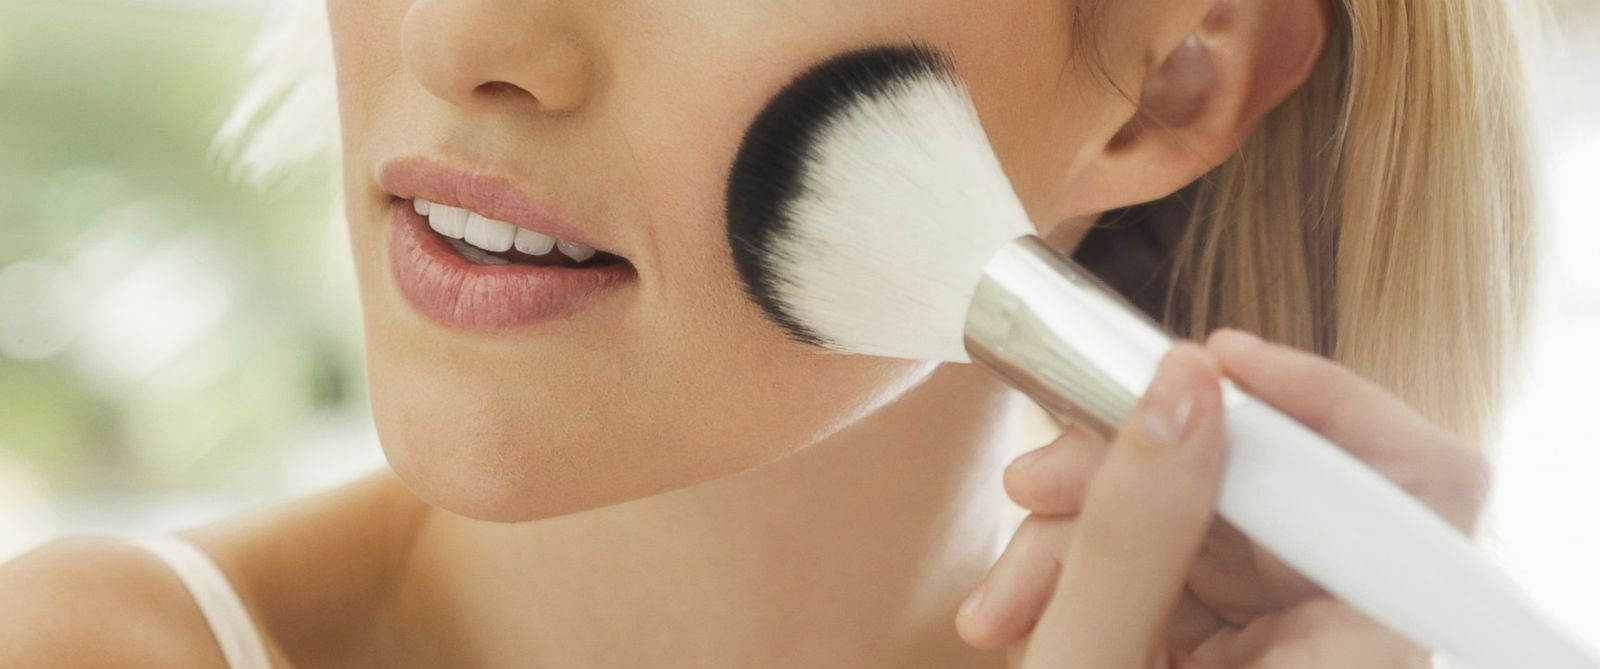 Good Morning America Beauty Tips : Makeup face contouring tips for a natural everyday